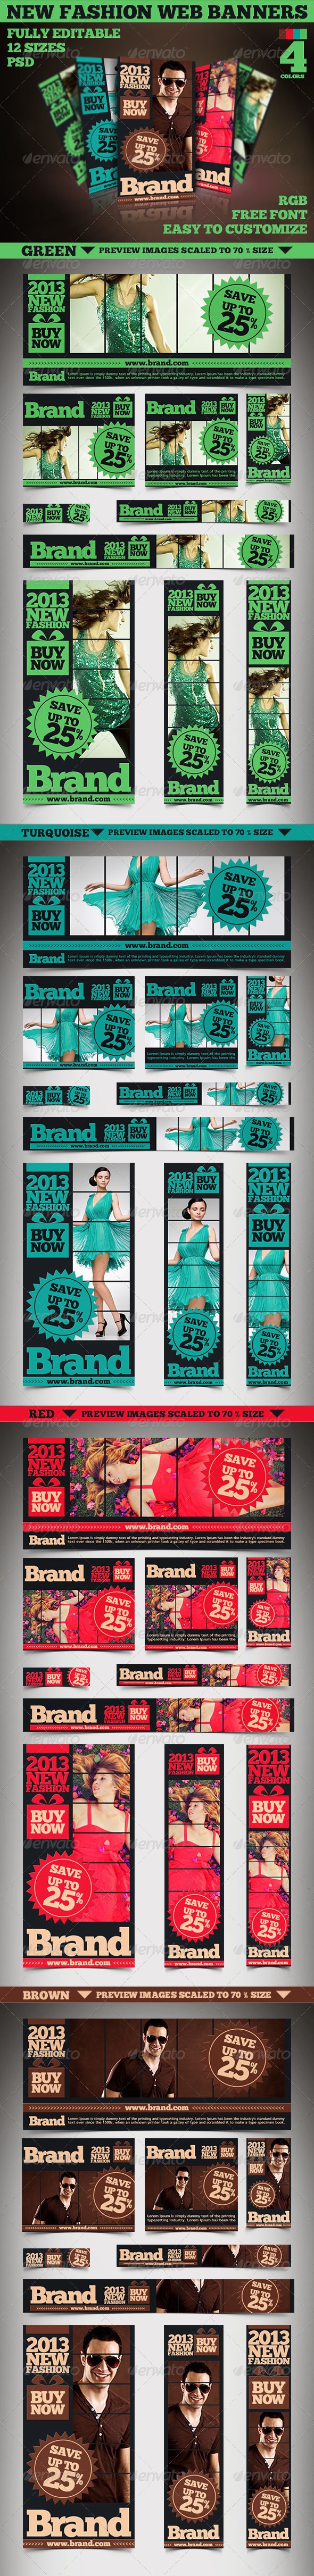 GraphicRiver New Fashion Web Banners & Advertise 3564009